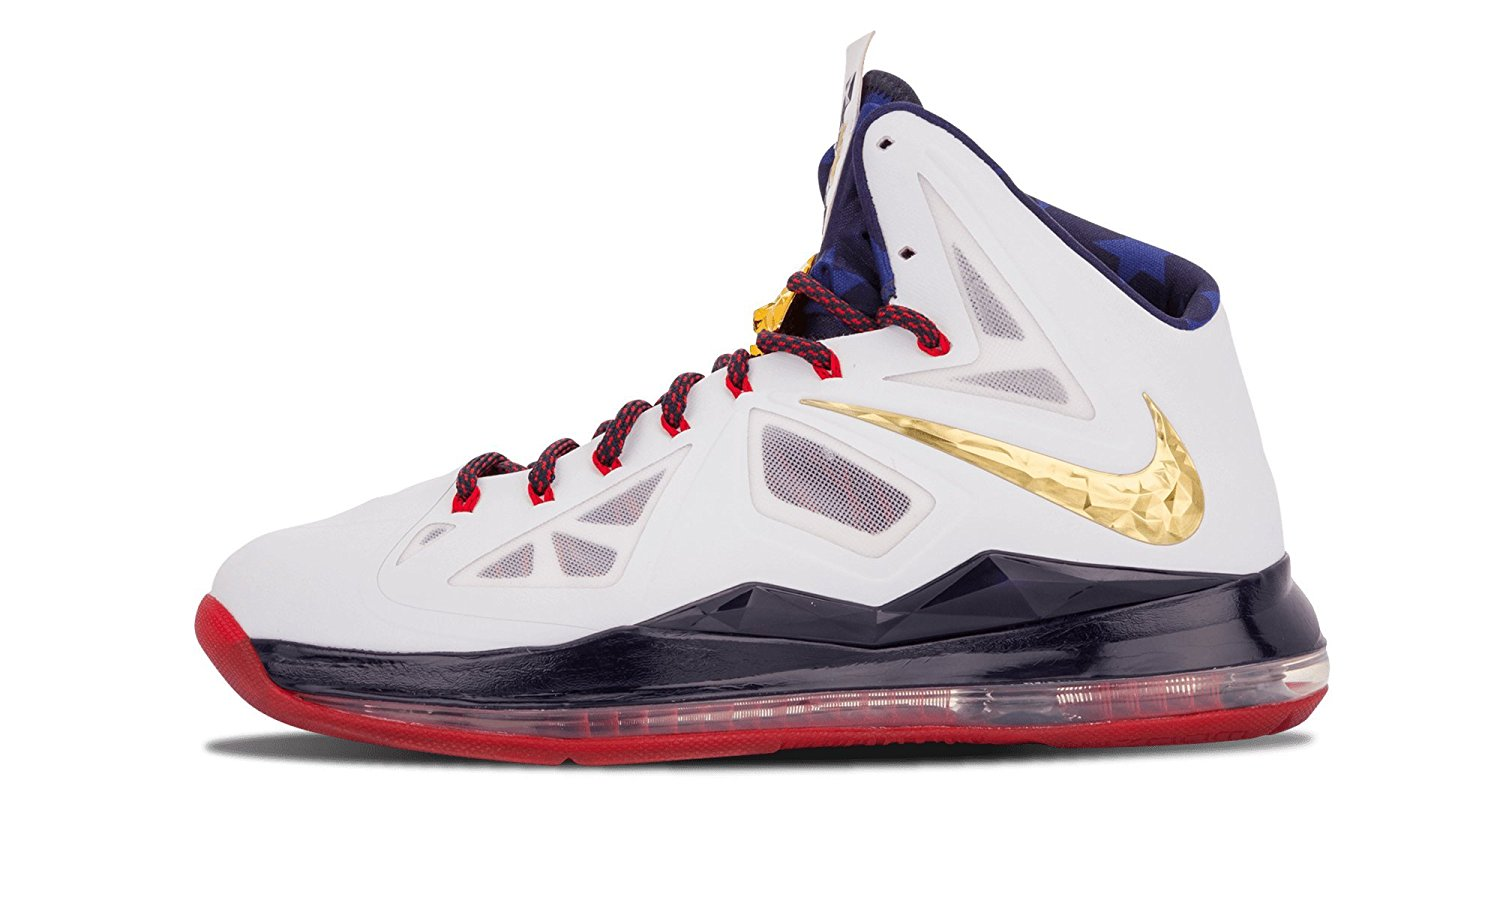 new style e8eb1 2db12 Get Quotations · Nike Lebron 10+ Sport Pack - 11